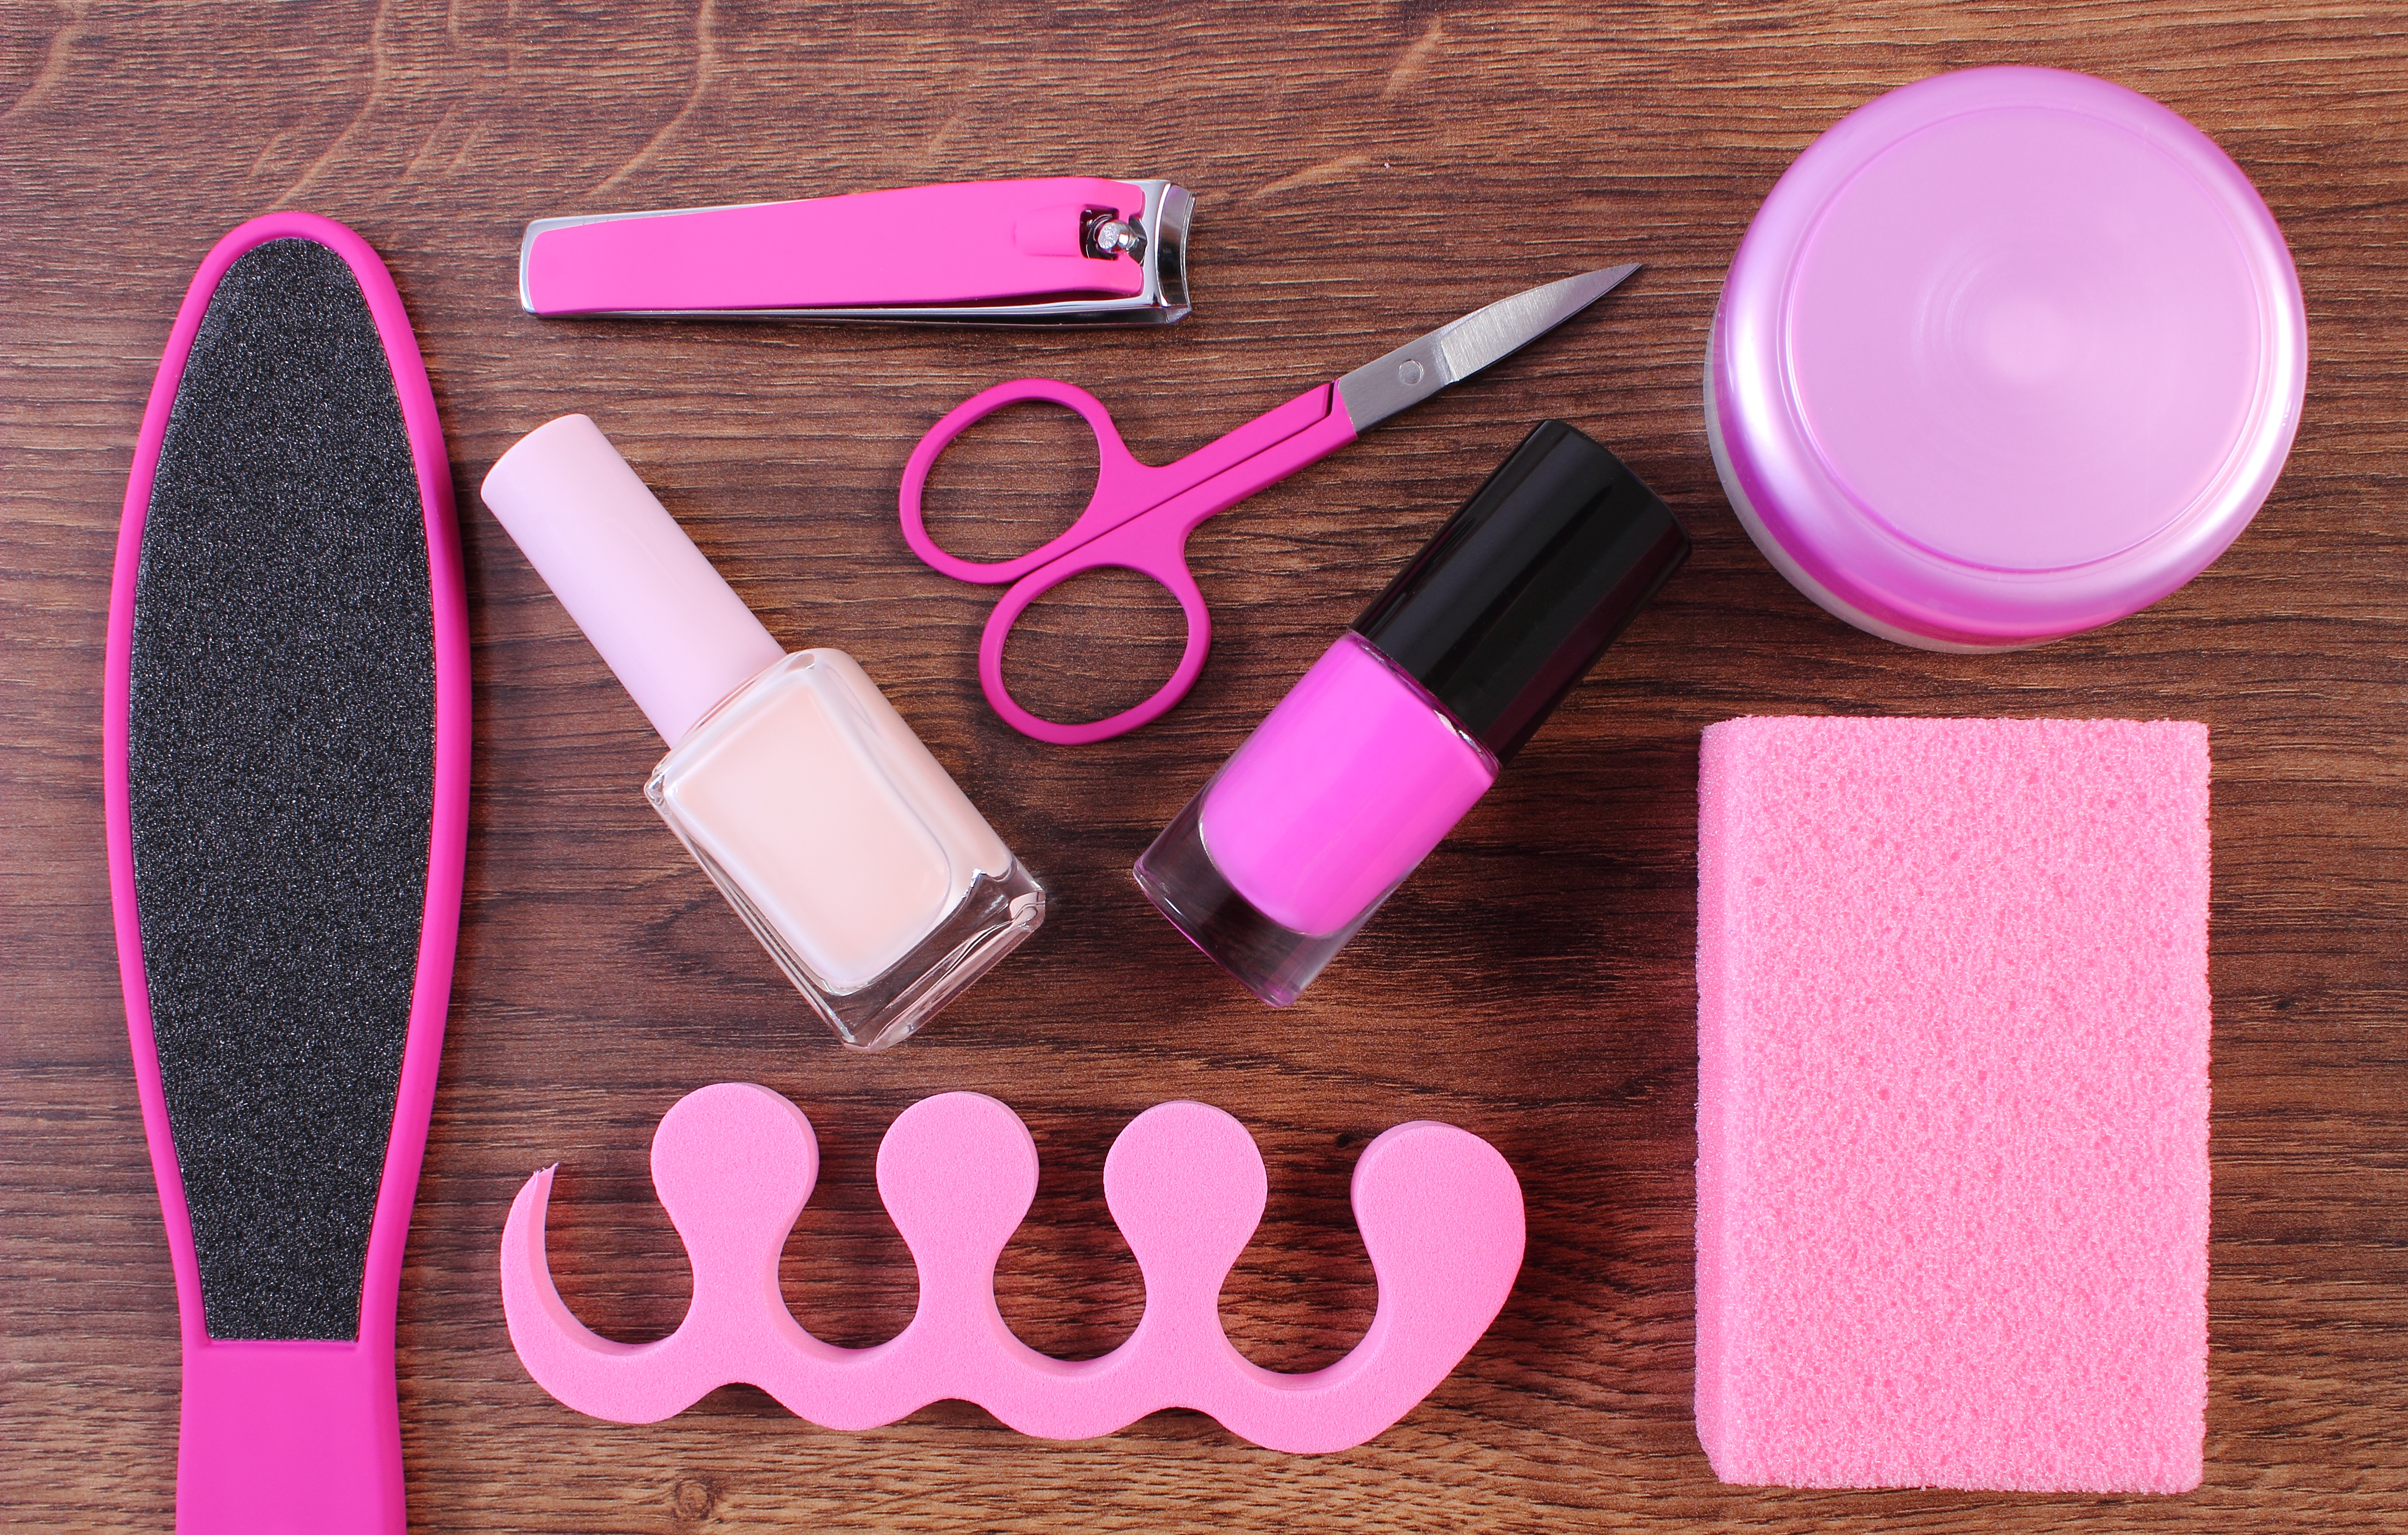 Cosmetics and accessories for manicure or pedicure, concept of nail, hand and foot care